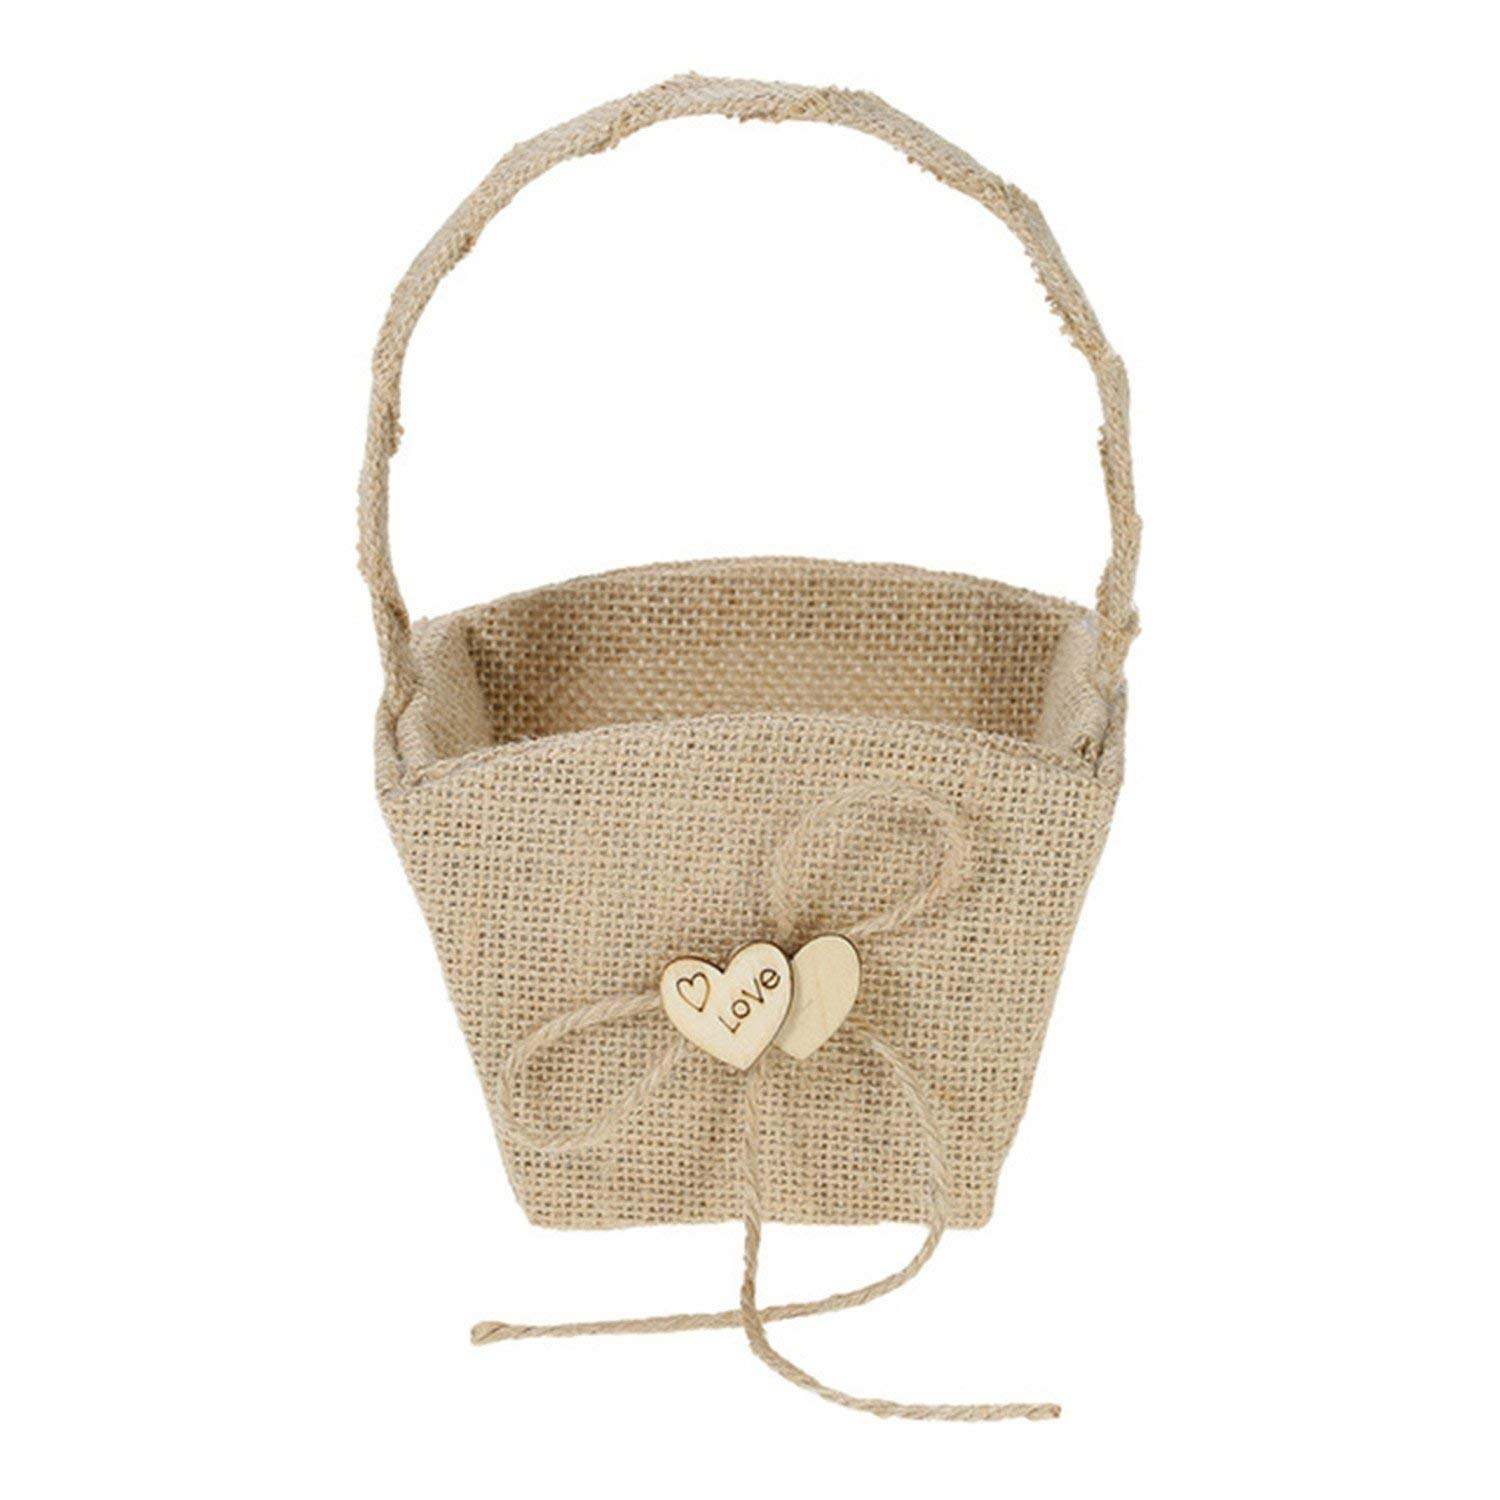 Cheap Wooden Flower Girl Baskets Find Wooden Flower Girl Baskets